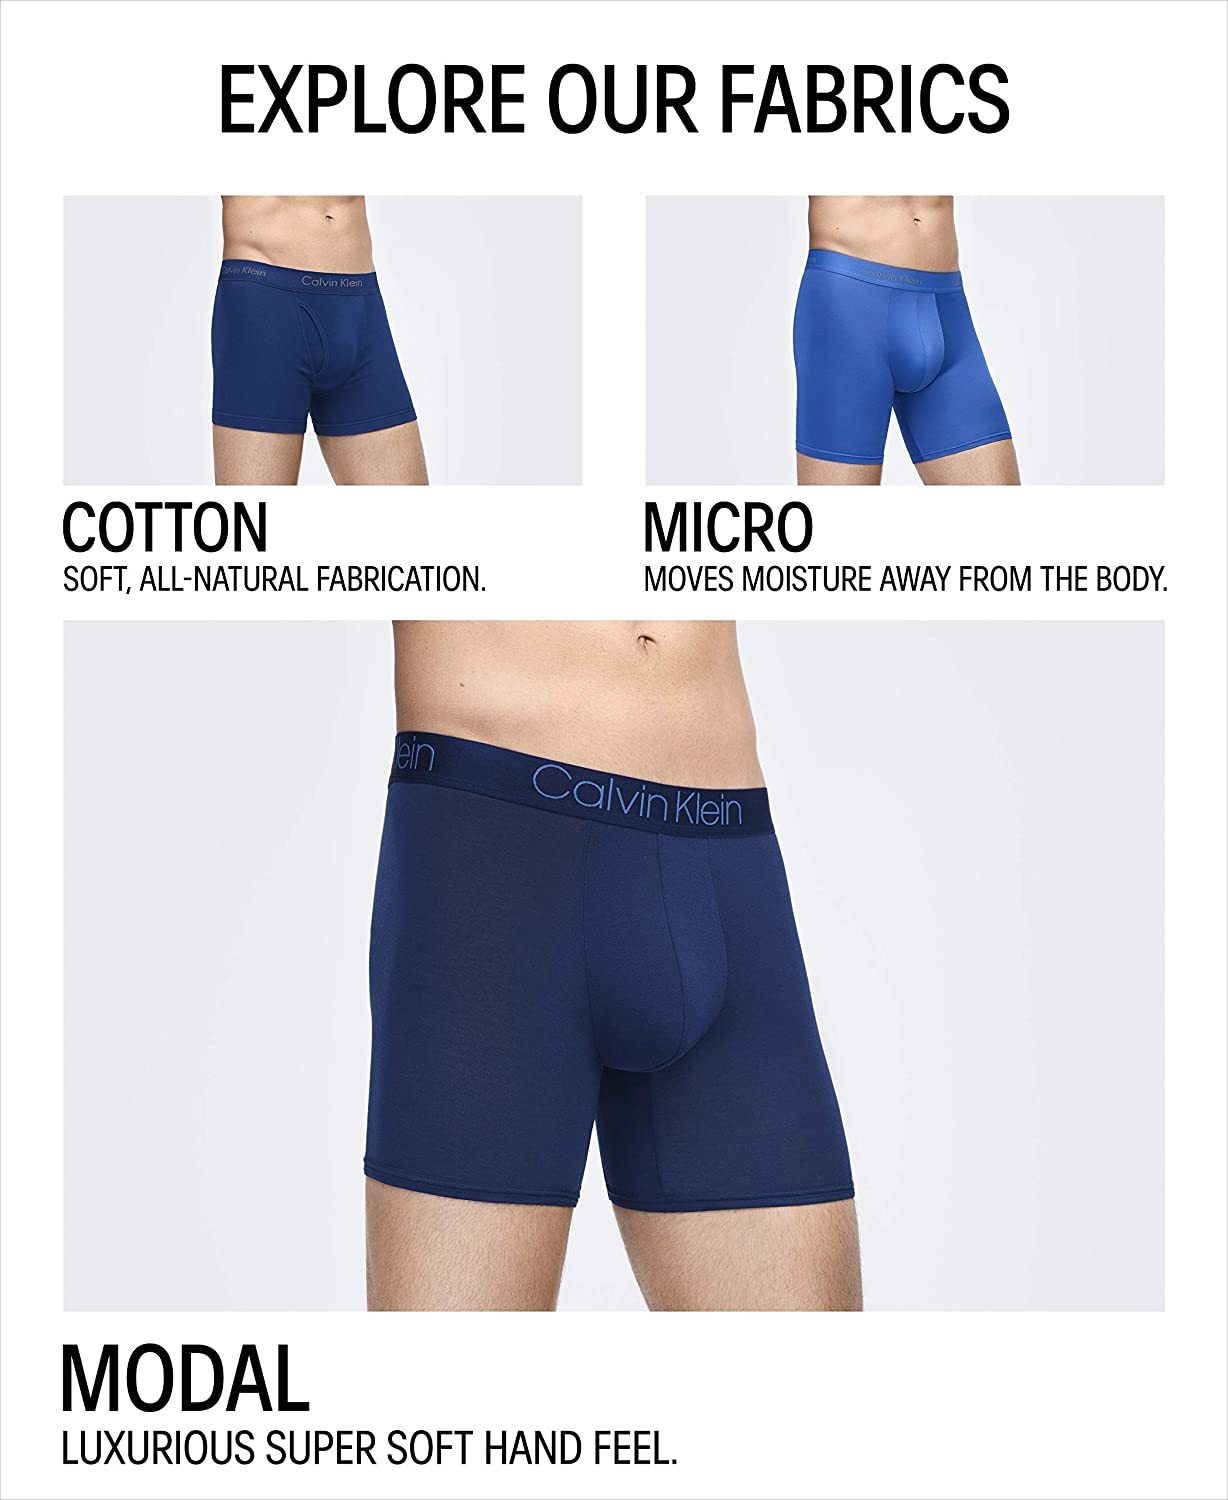 Calvin Klein Men's Body Modal Trunks: Clothing